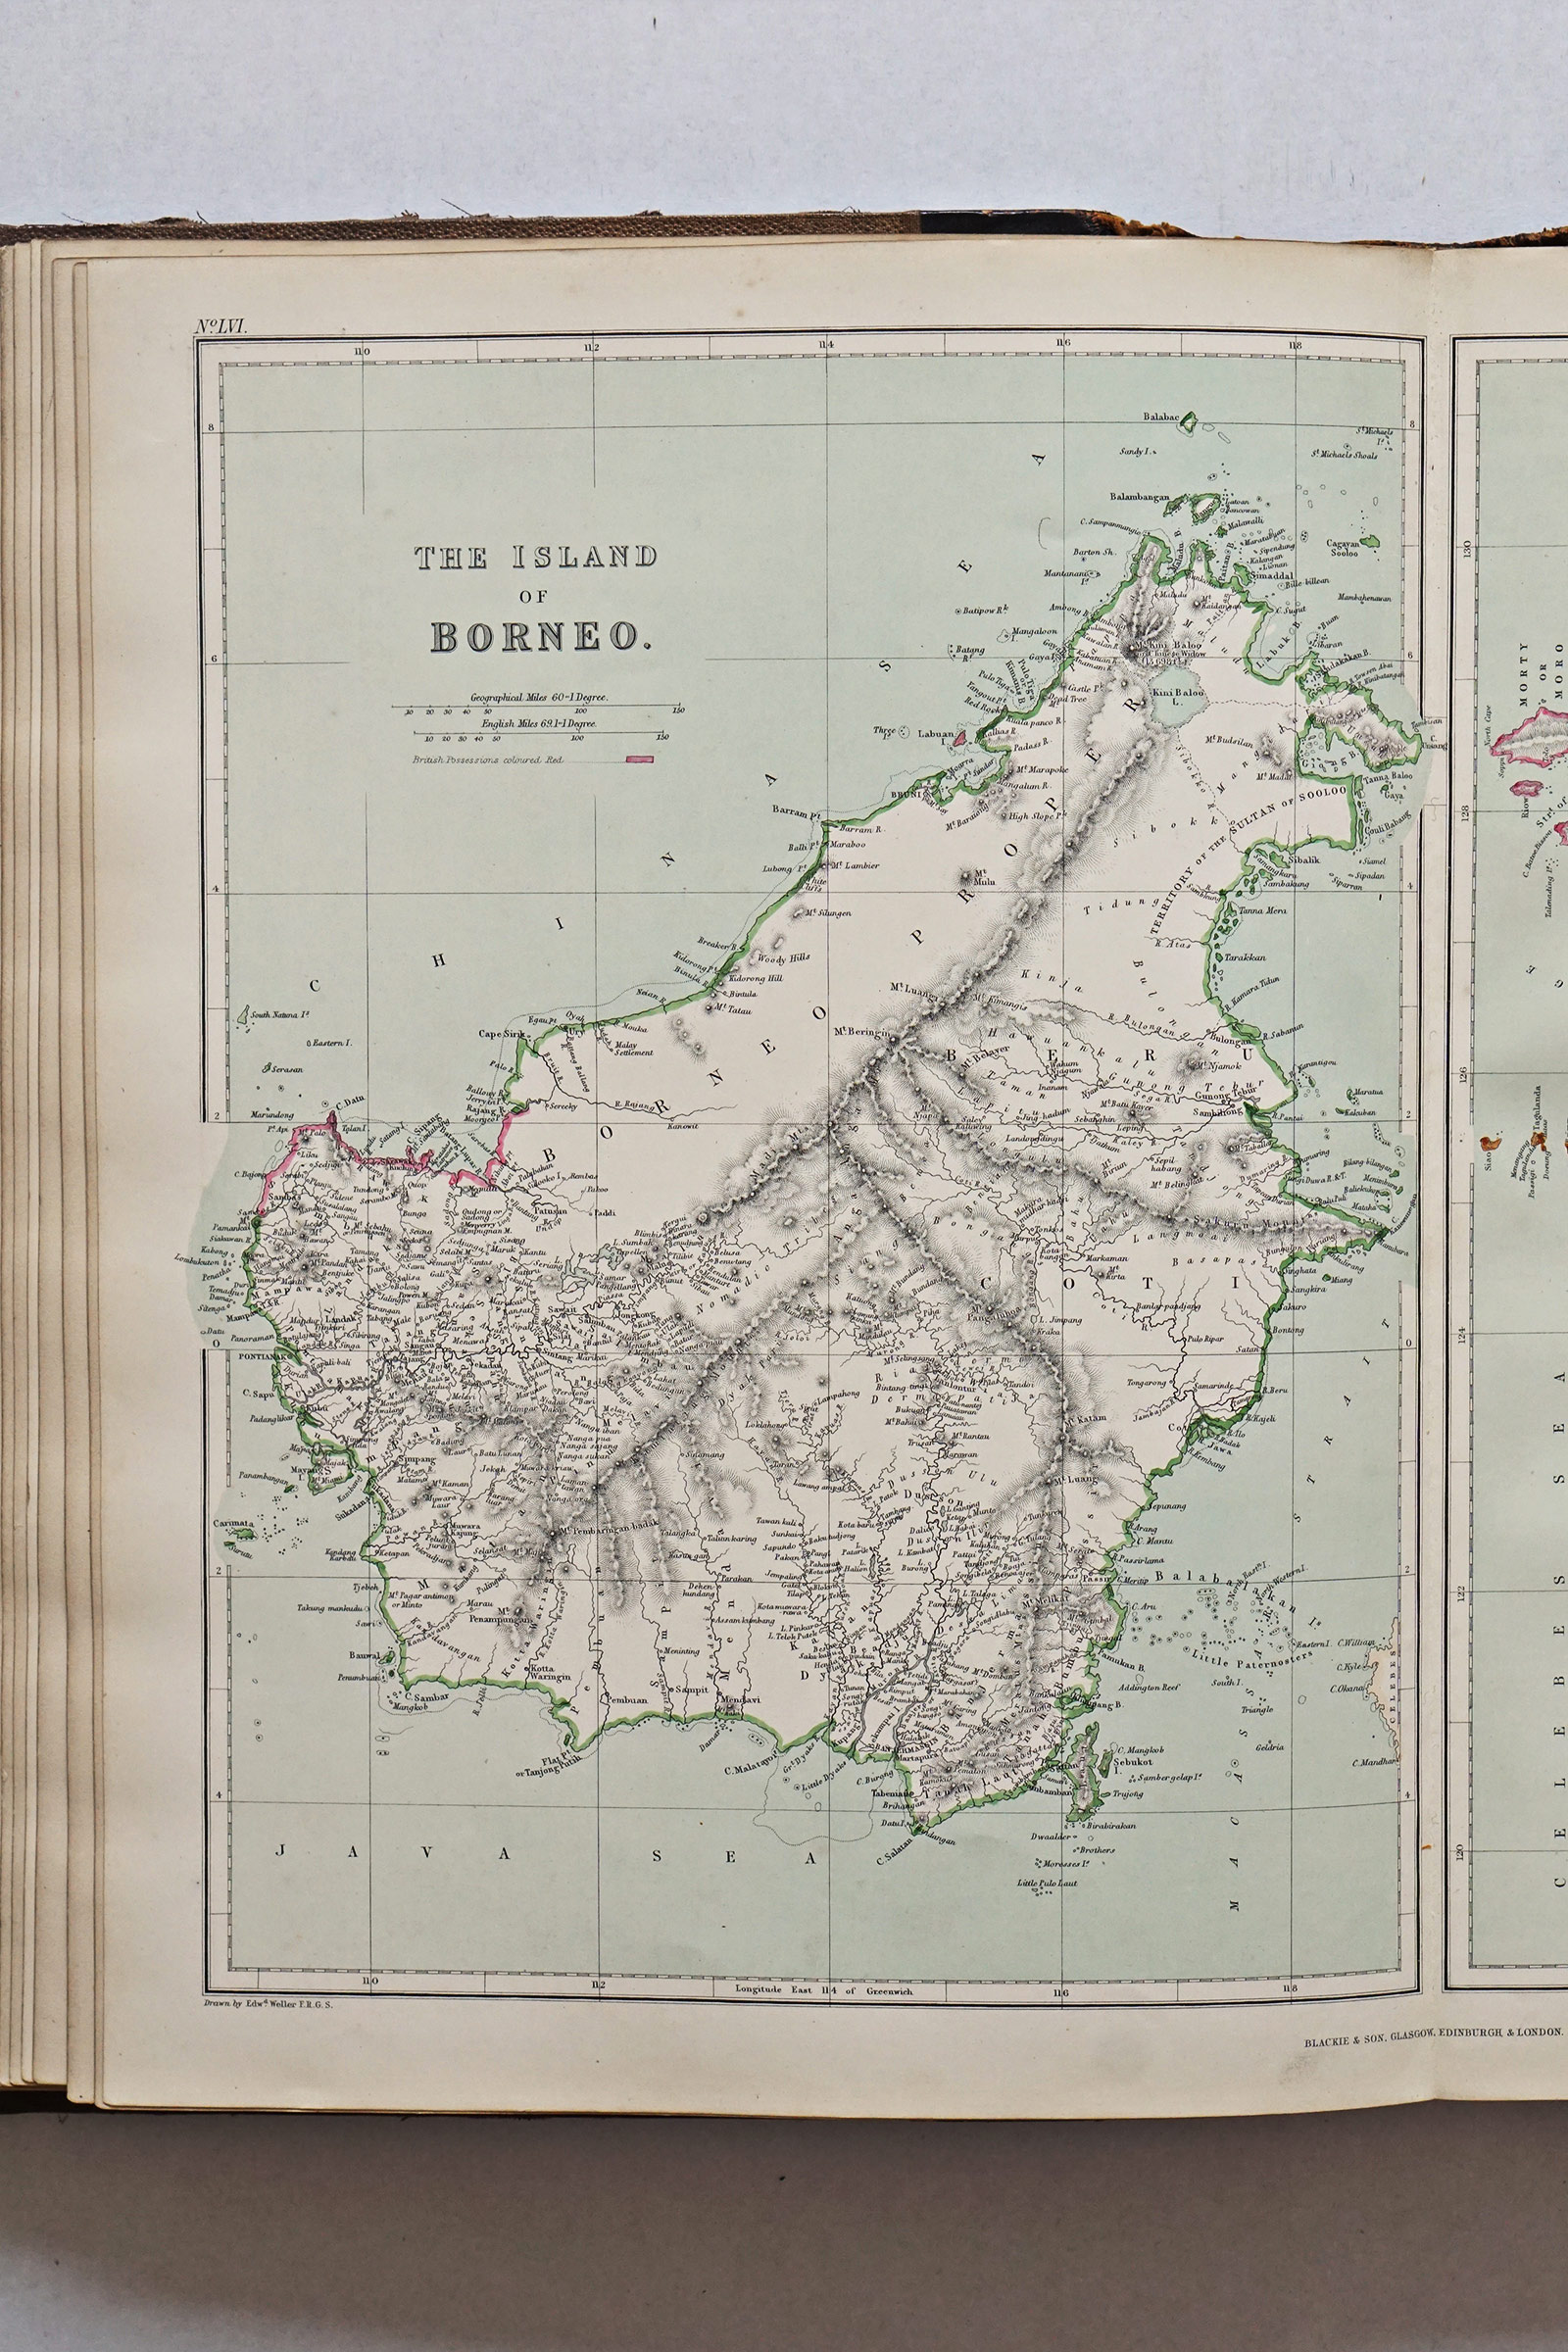 Map of Borneo from Imperial Atlas of Modern Geography - 1872